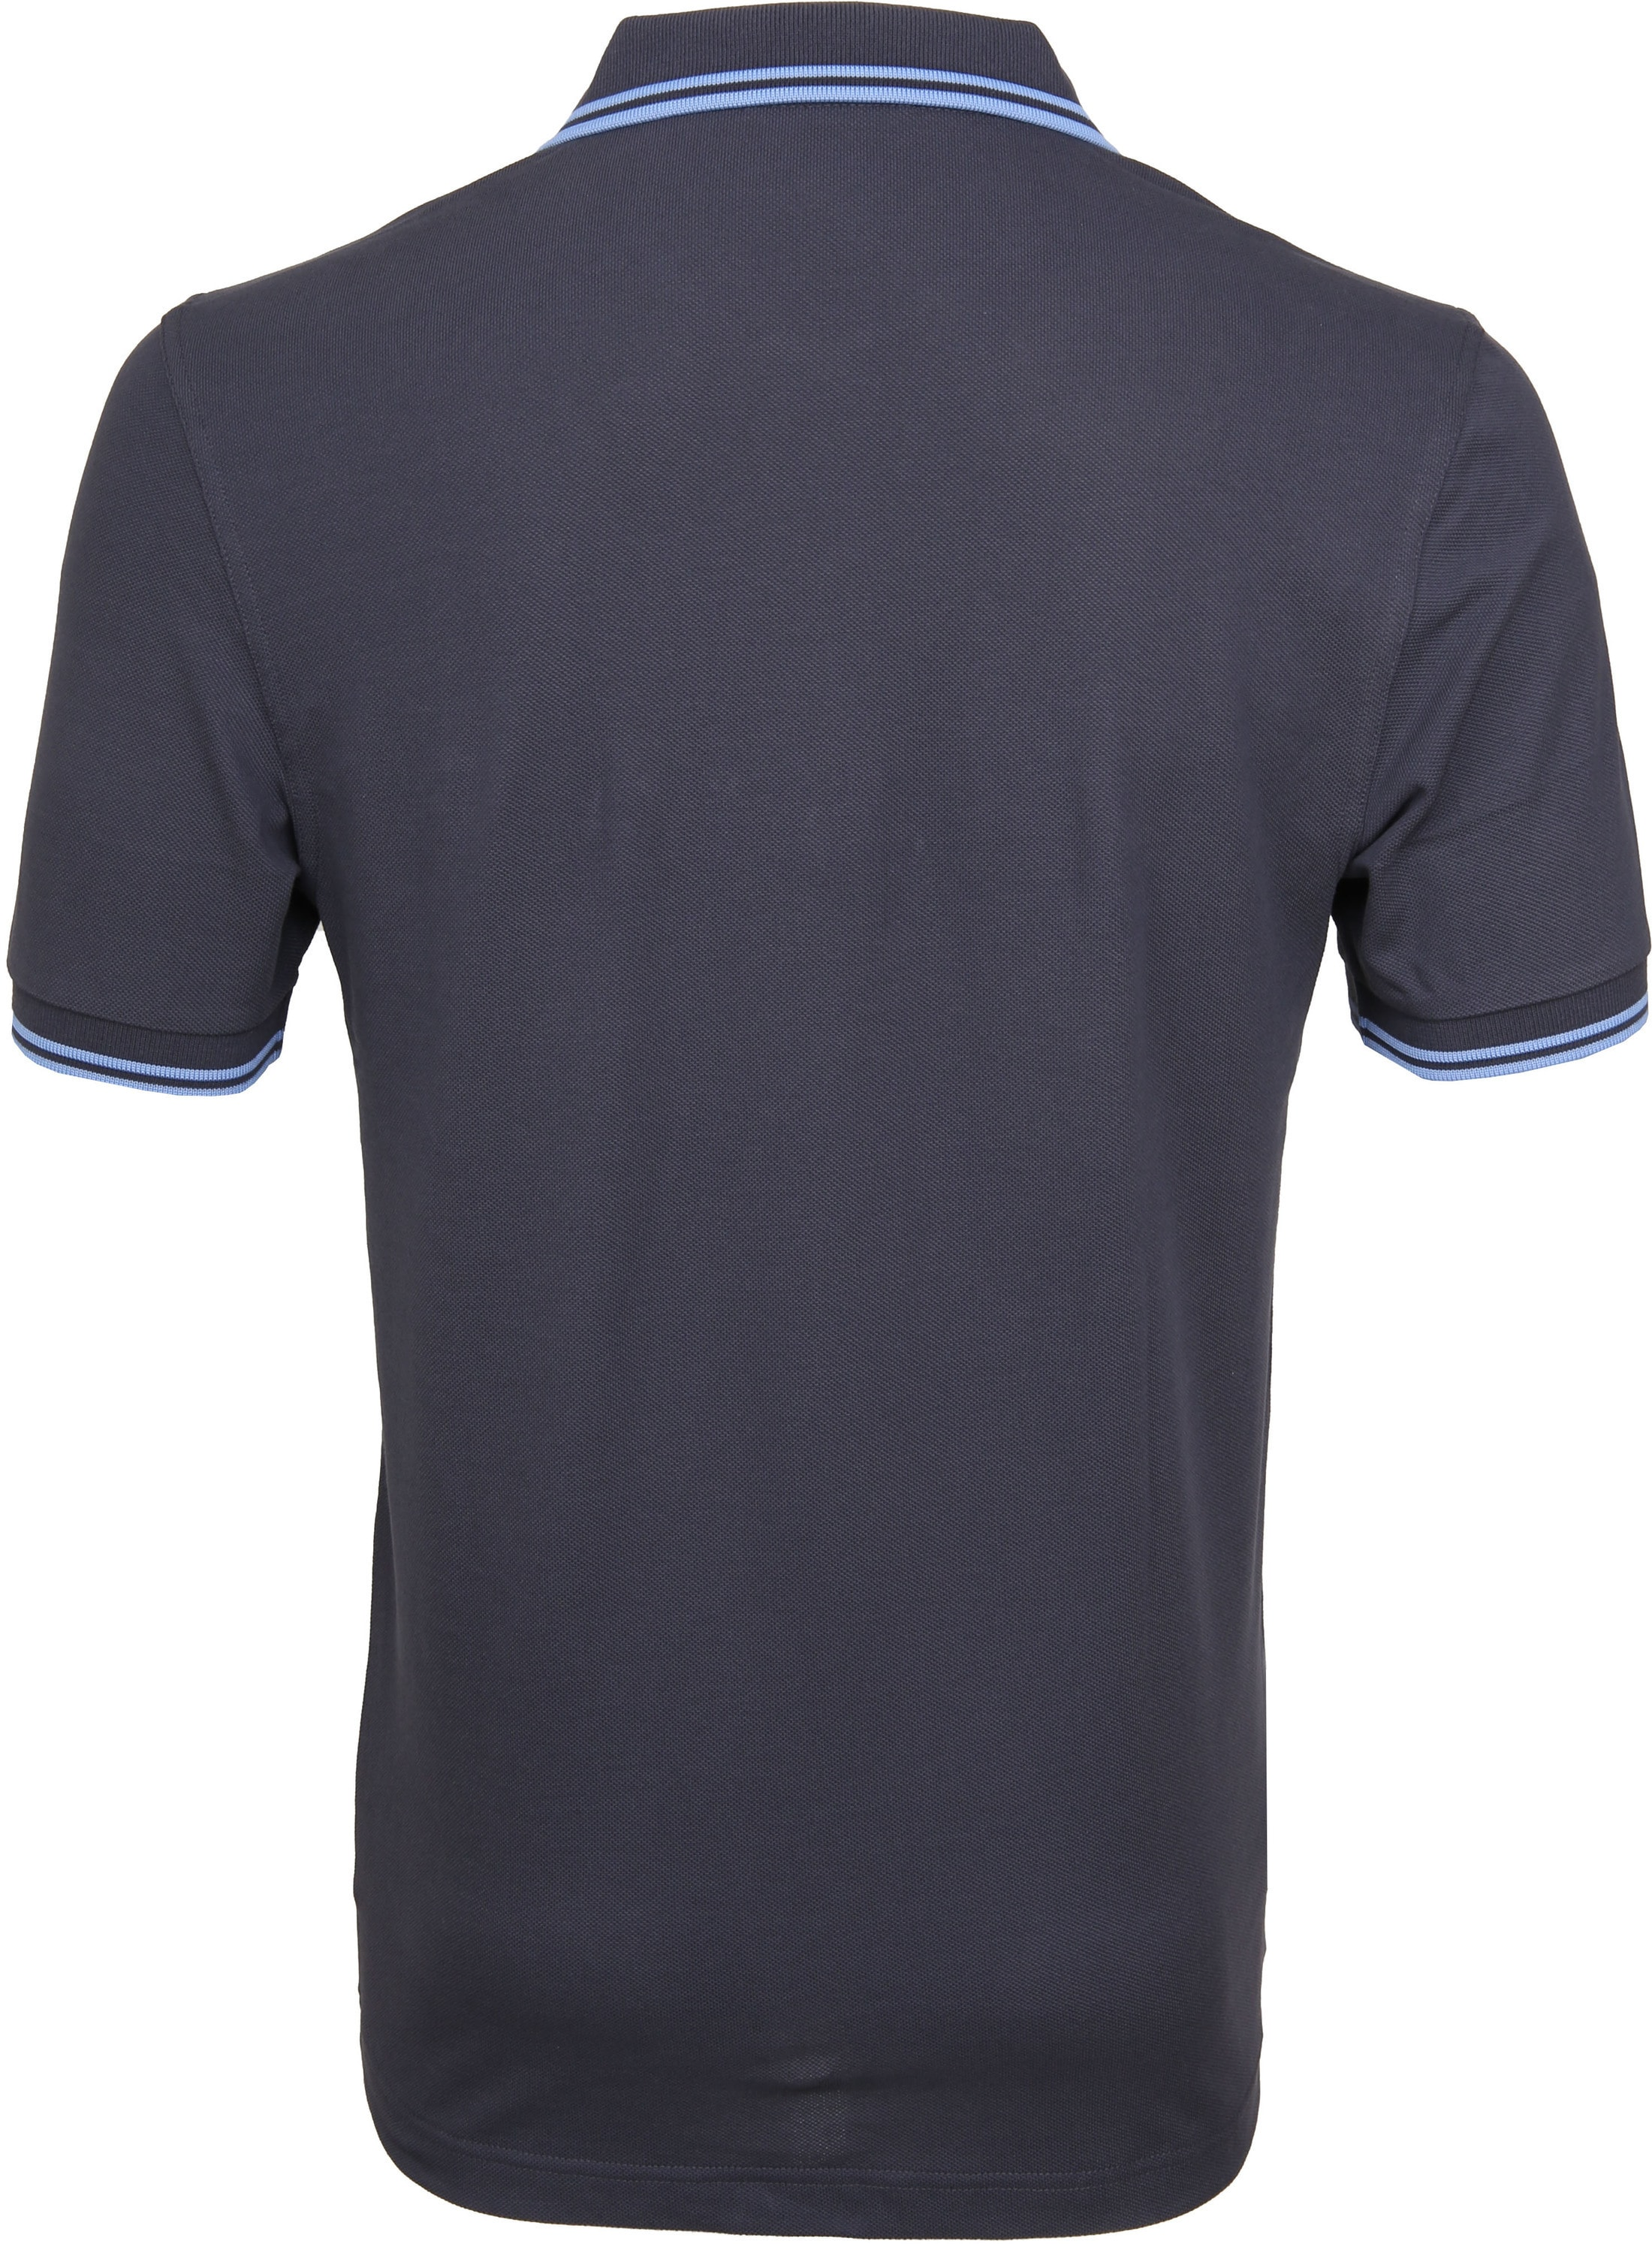 Fred Perry Polo Grijs Blauw C12 foto 3